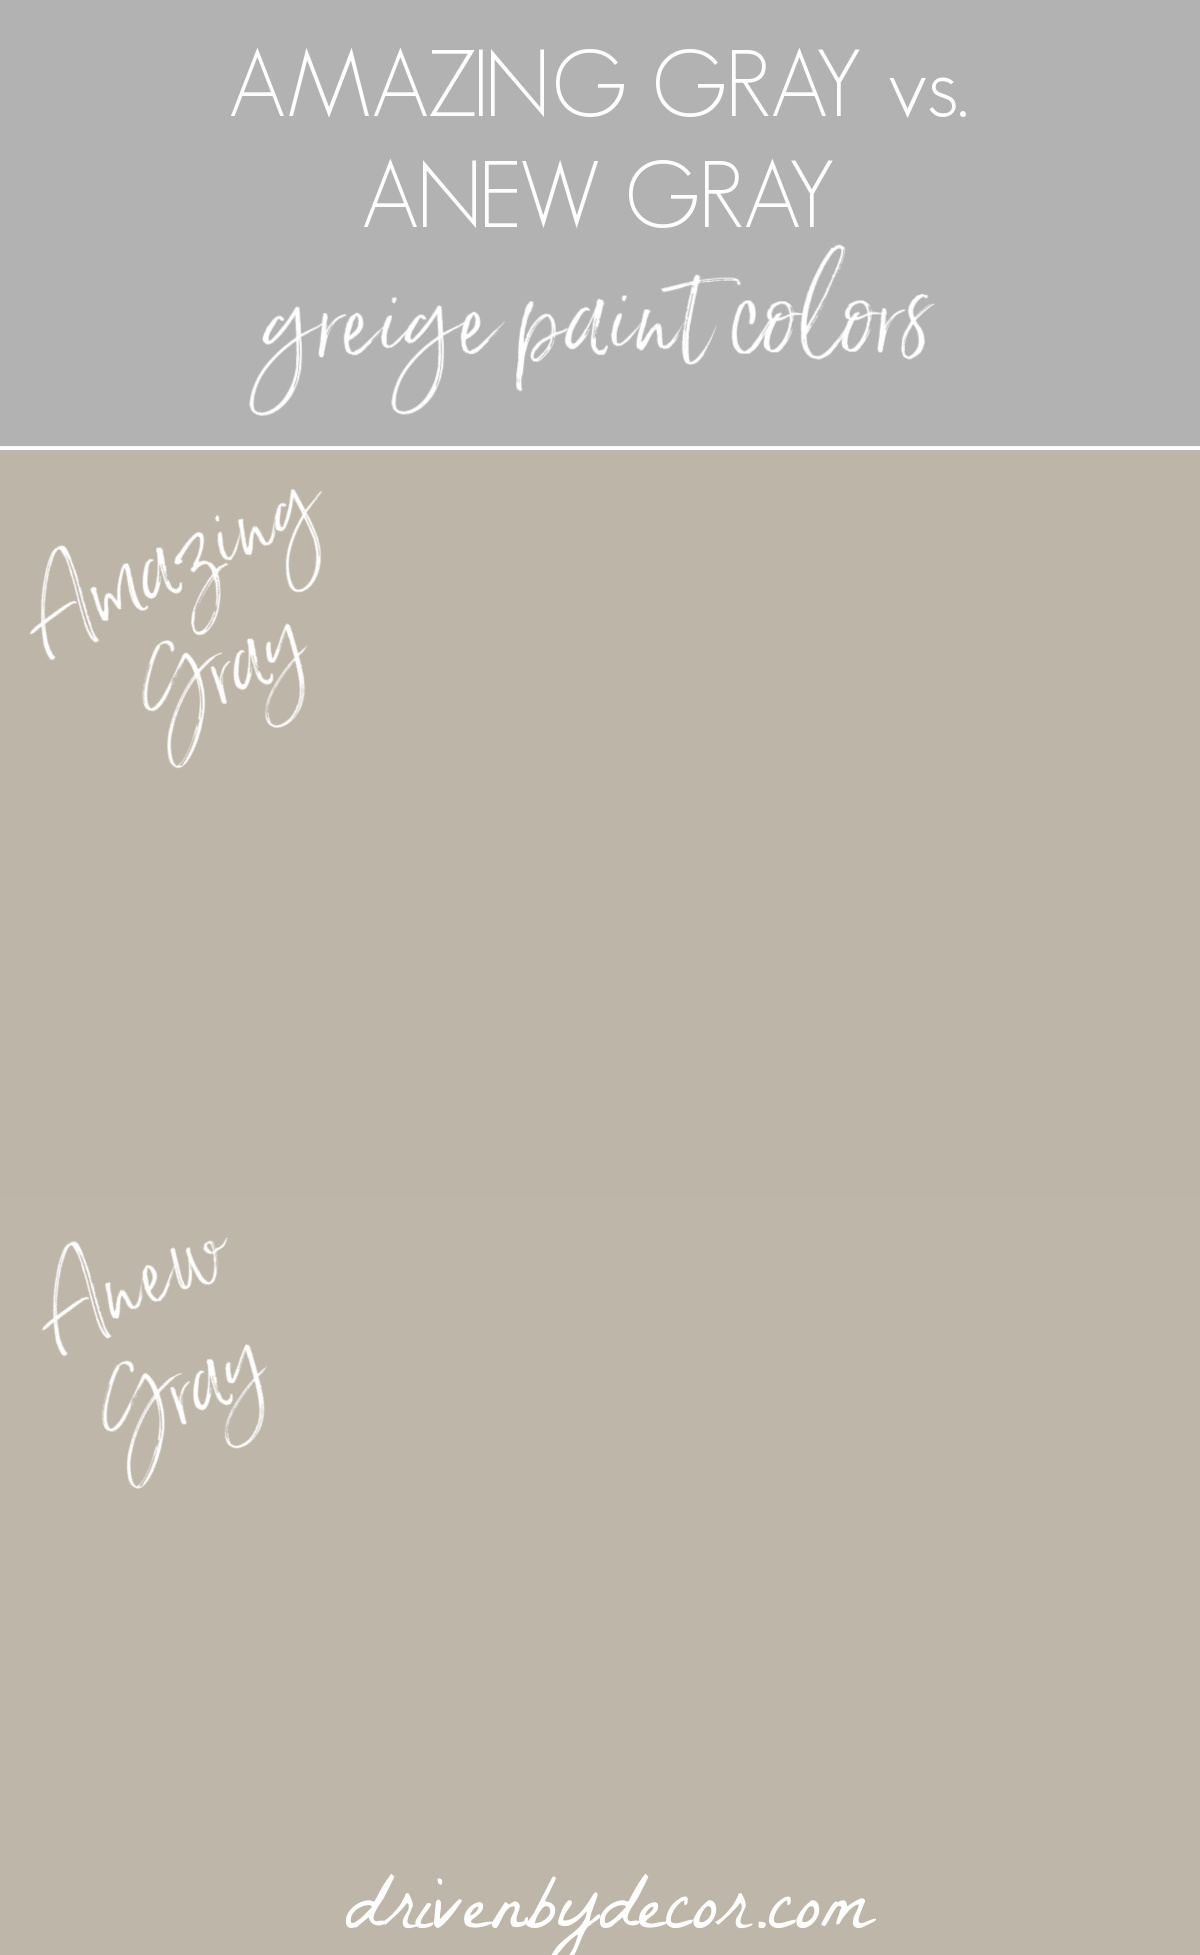 Amazing Gray vs. Anew Gray greige paint colors